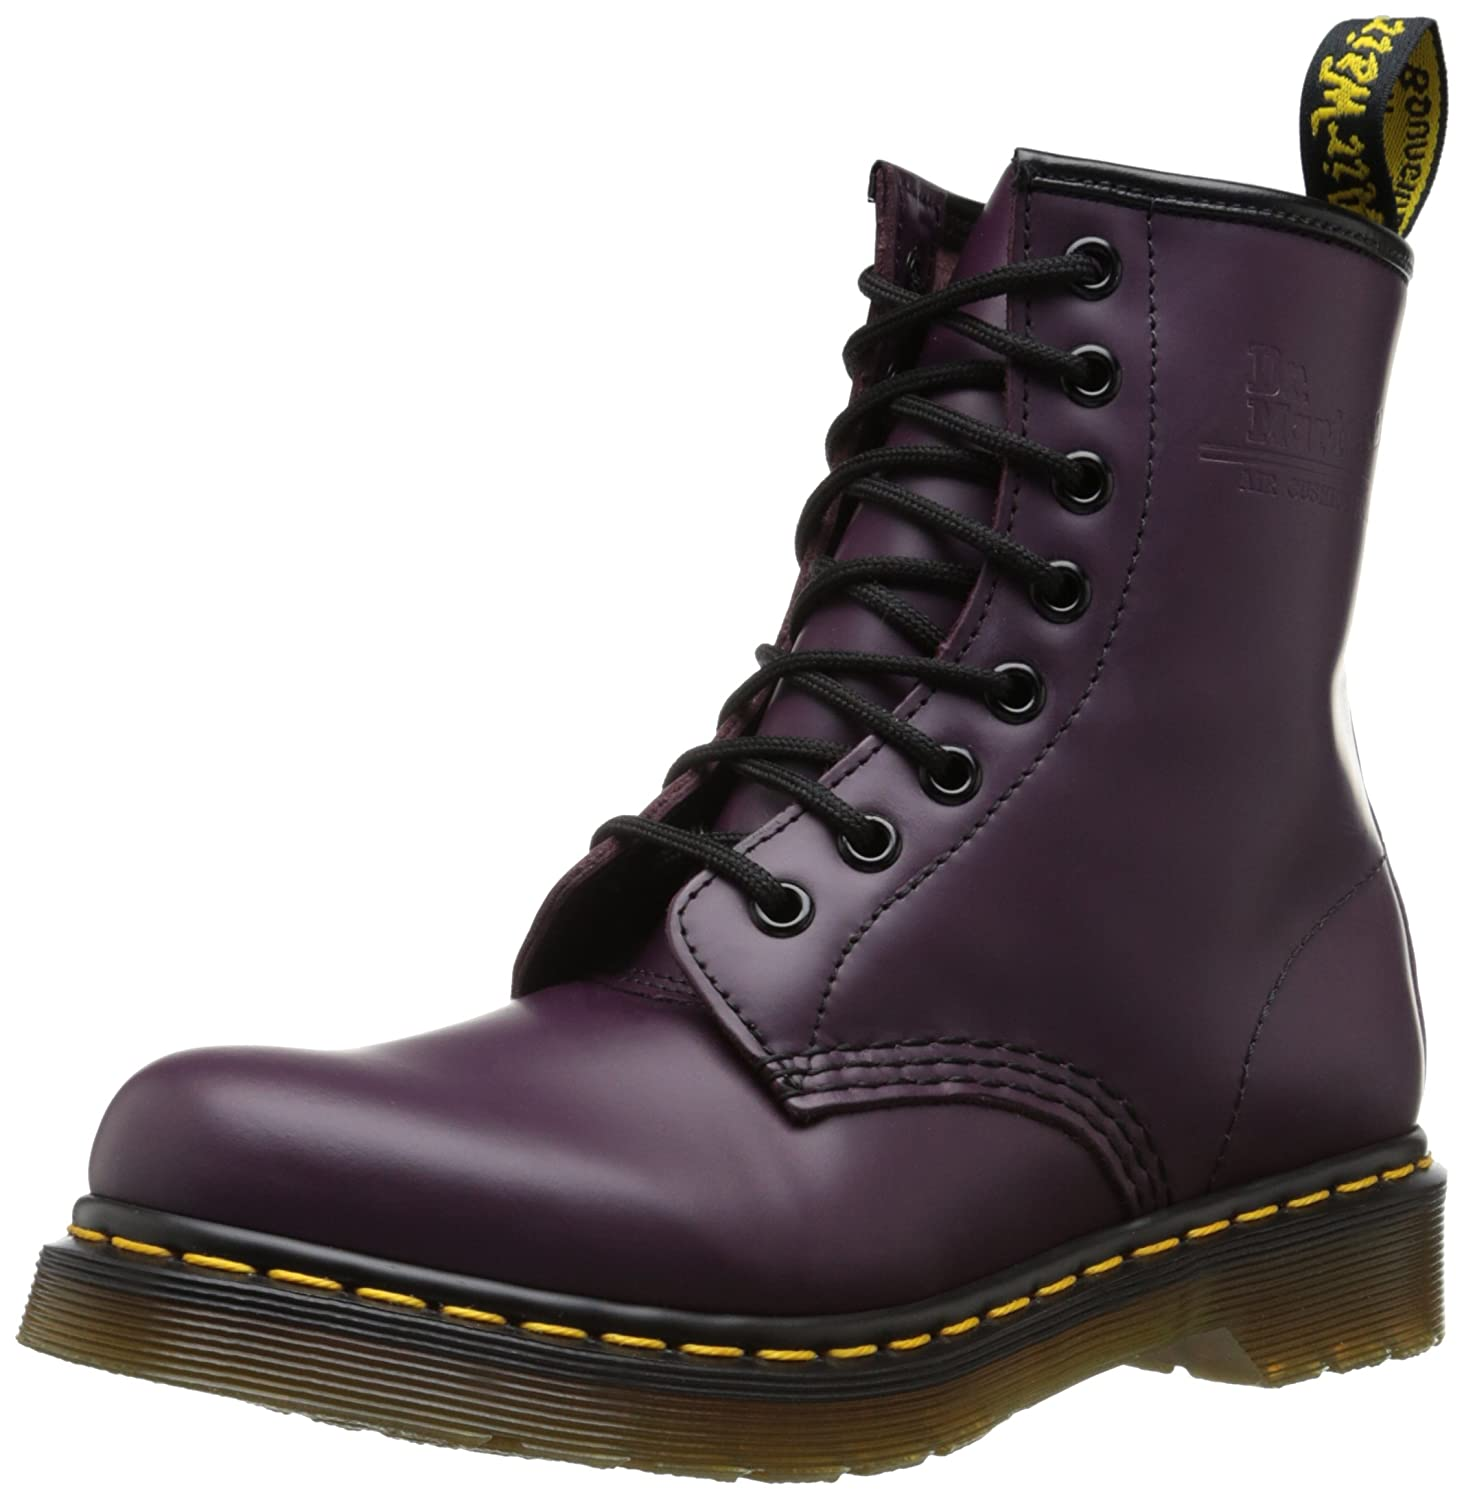 Dr. Martens Women's 1460 W B001387T2A 6 UK / 7 US Mens / 8 US Womens|Purple Smooth Leather